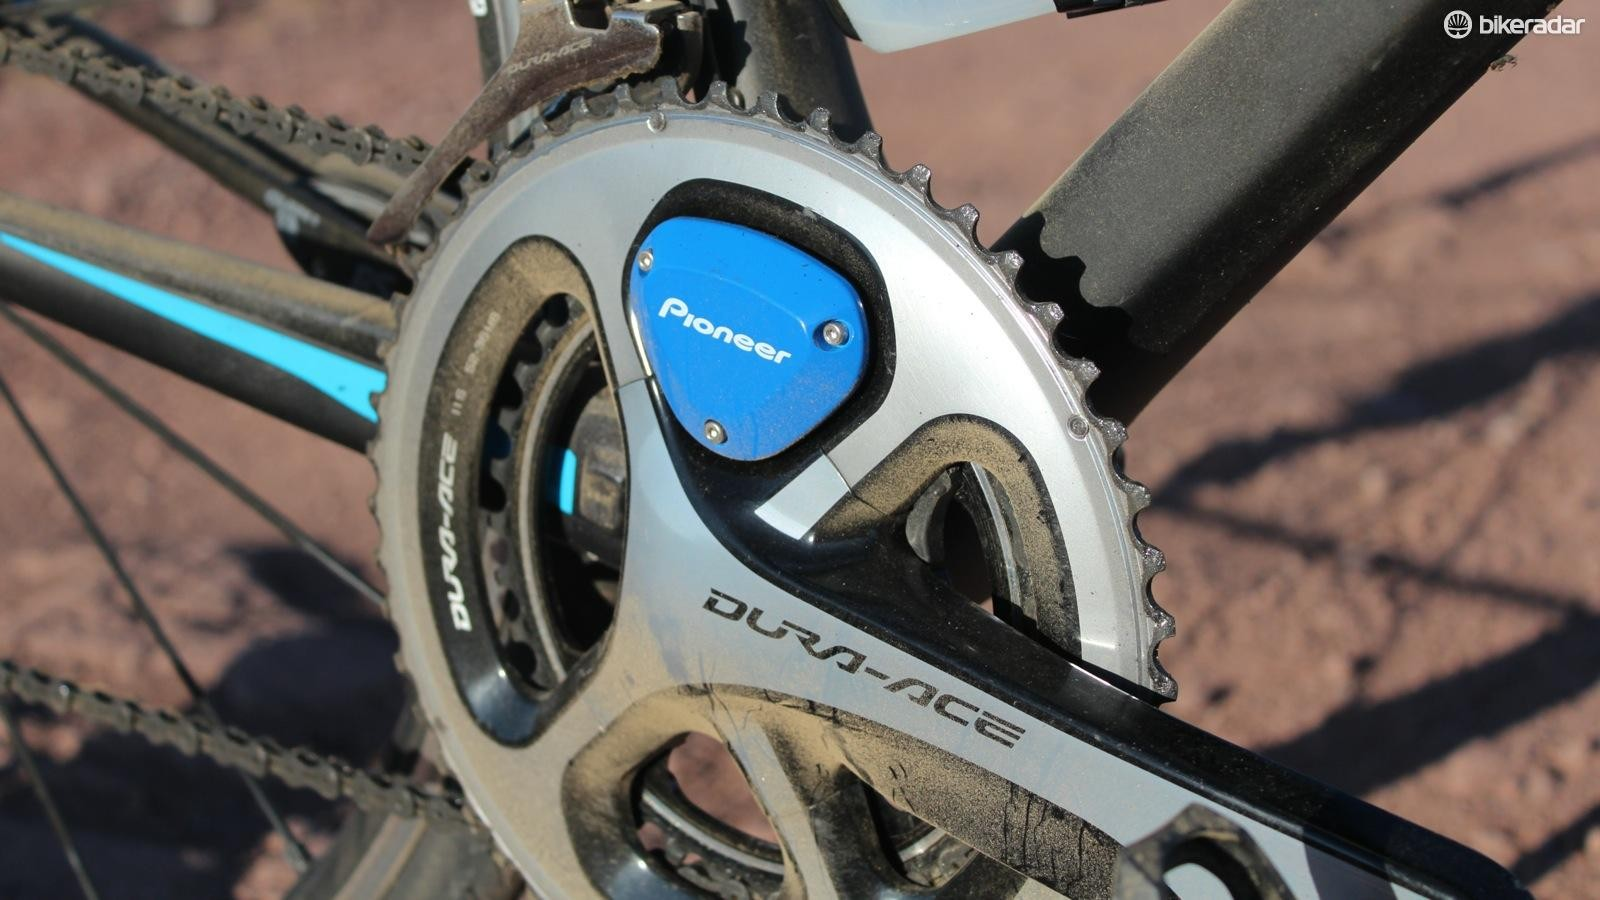 Pioneer's power meter gives true left/right measurement plus a unique 12-point measurement of where and how power is created